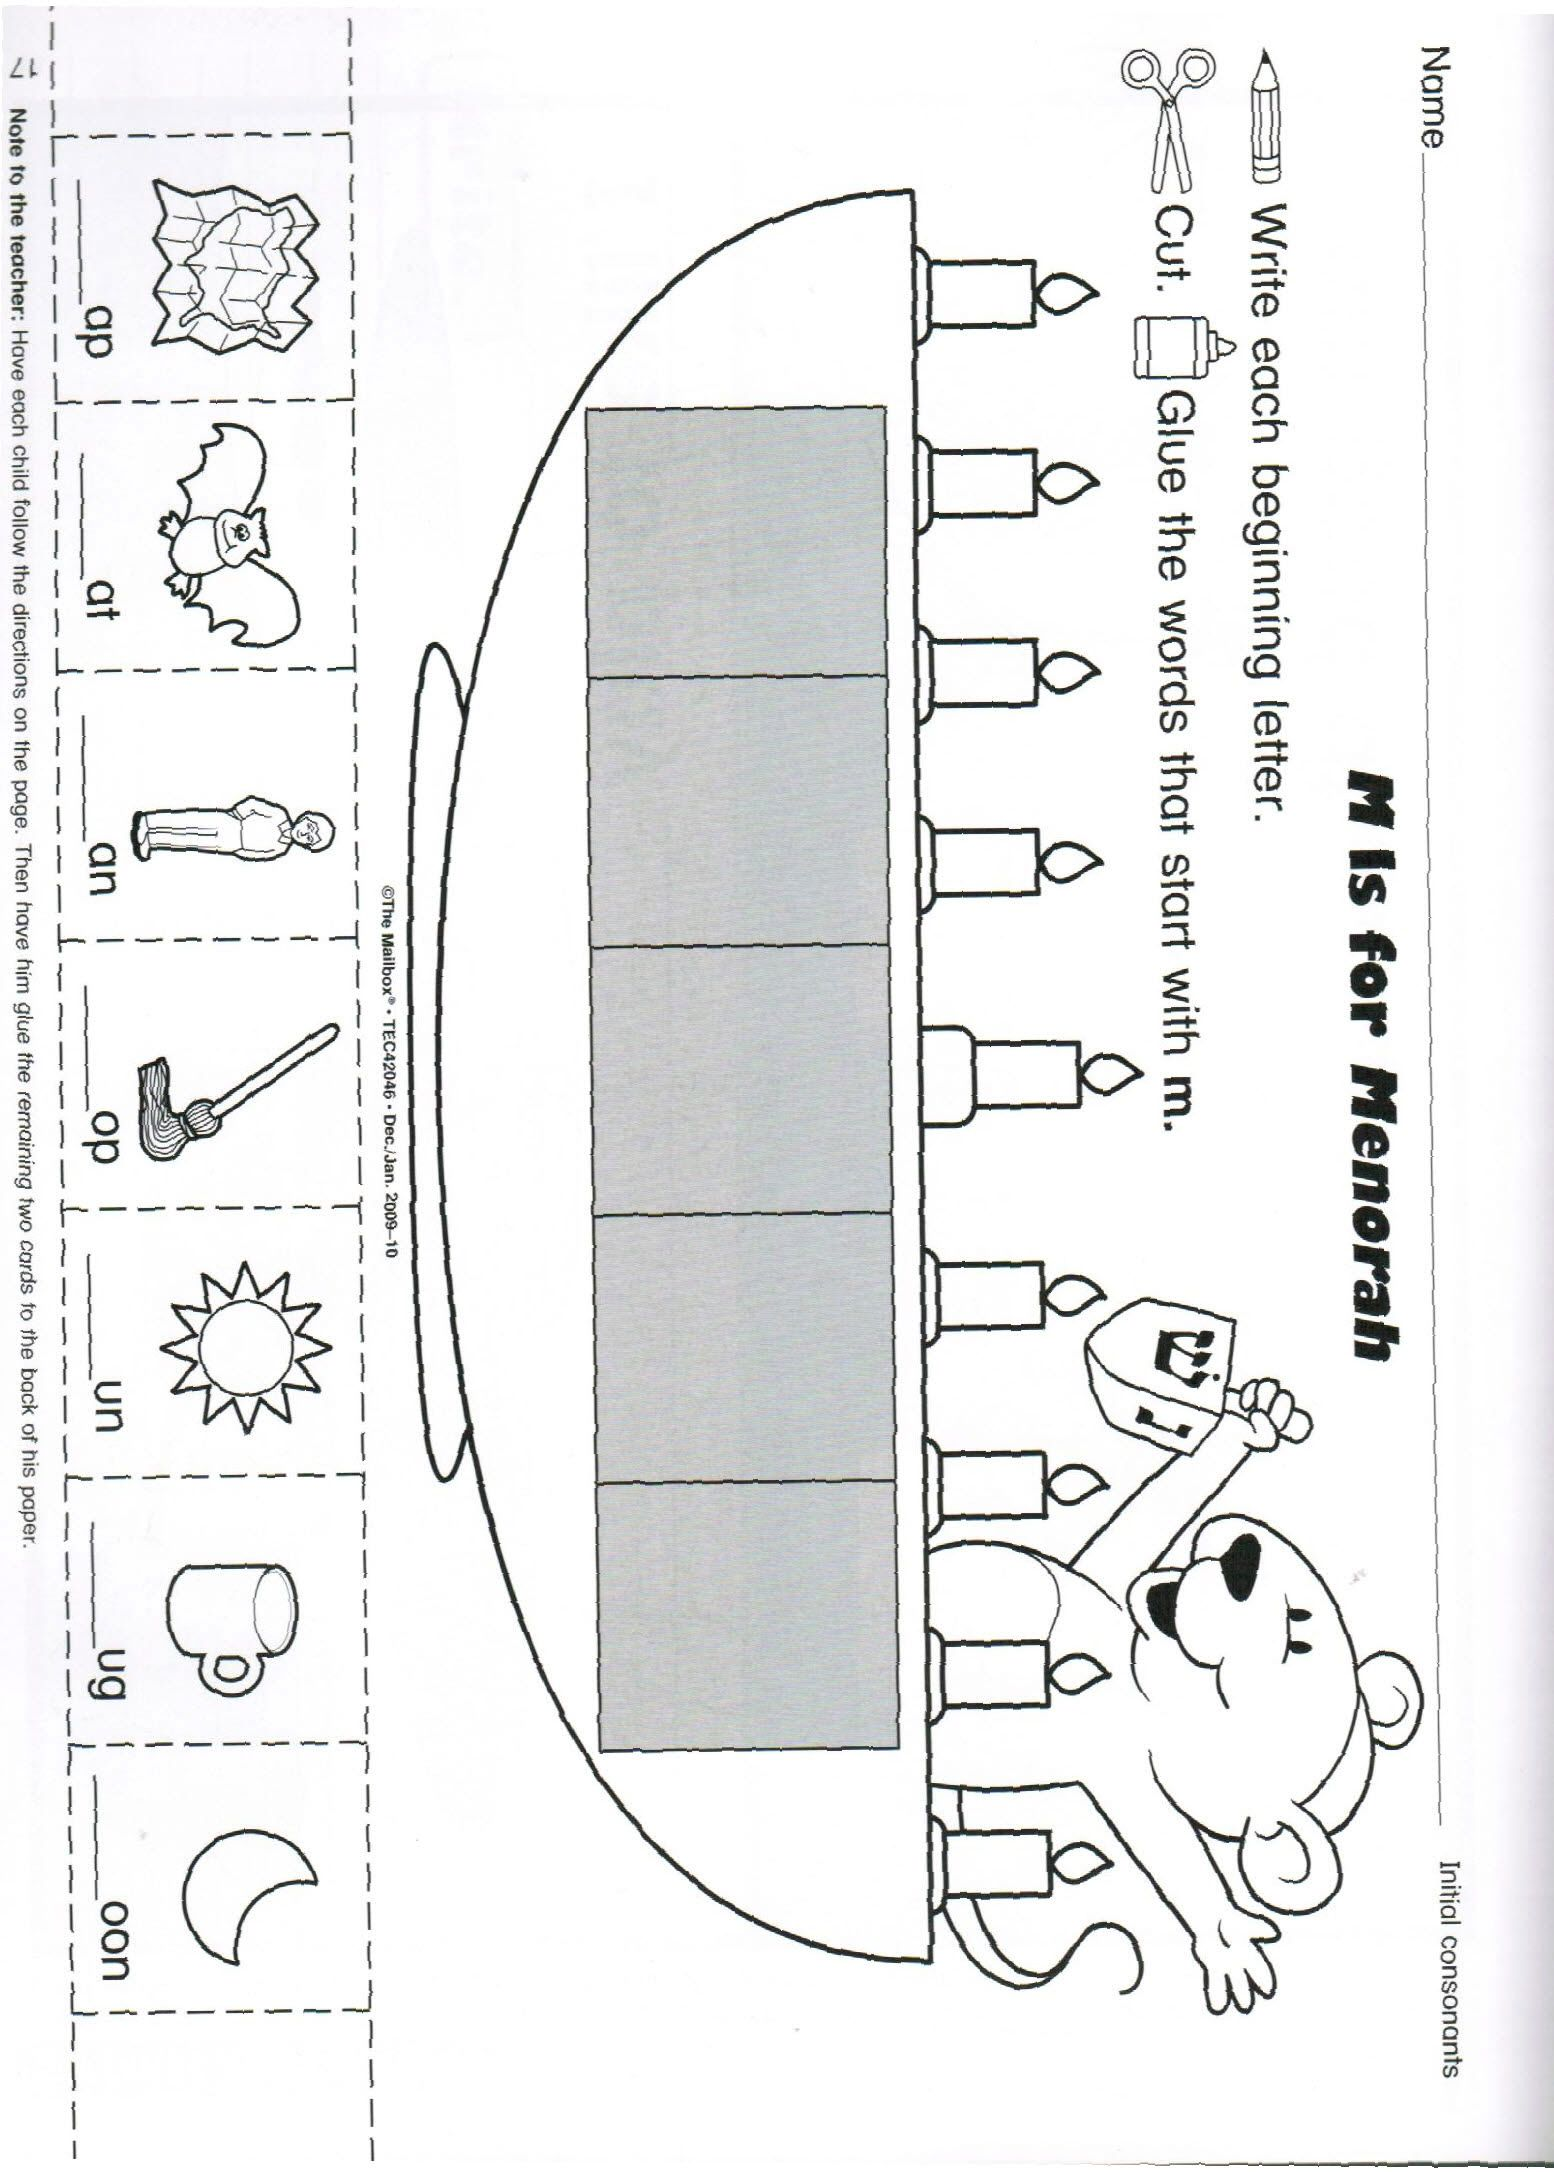 Hanukkah Reproducible Skill Page For Practicing Beginning